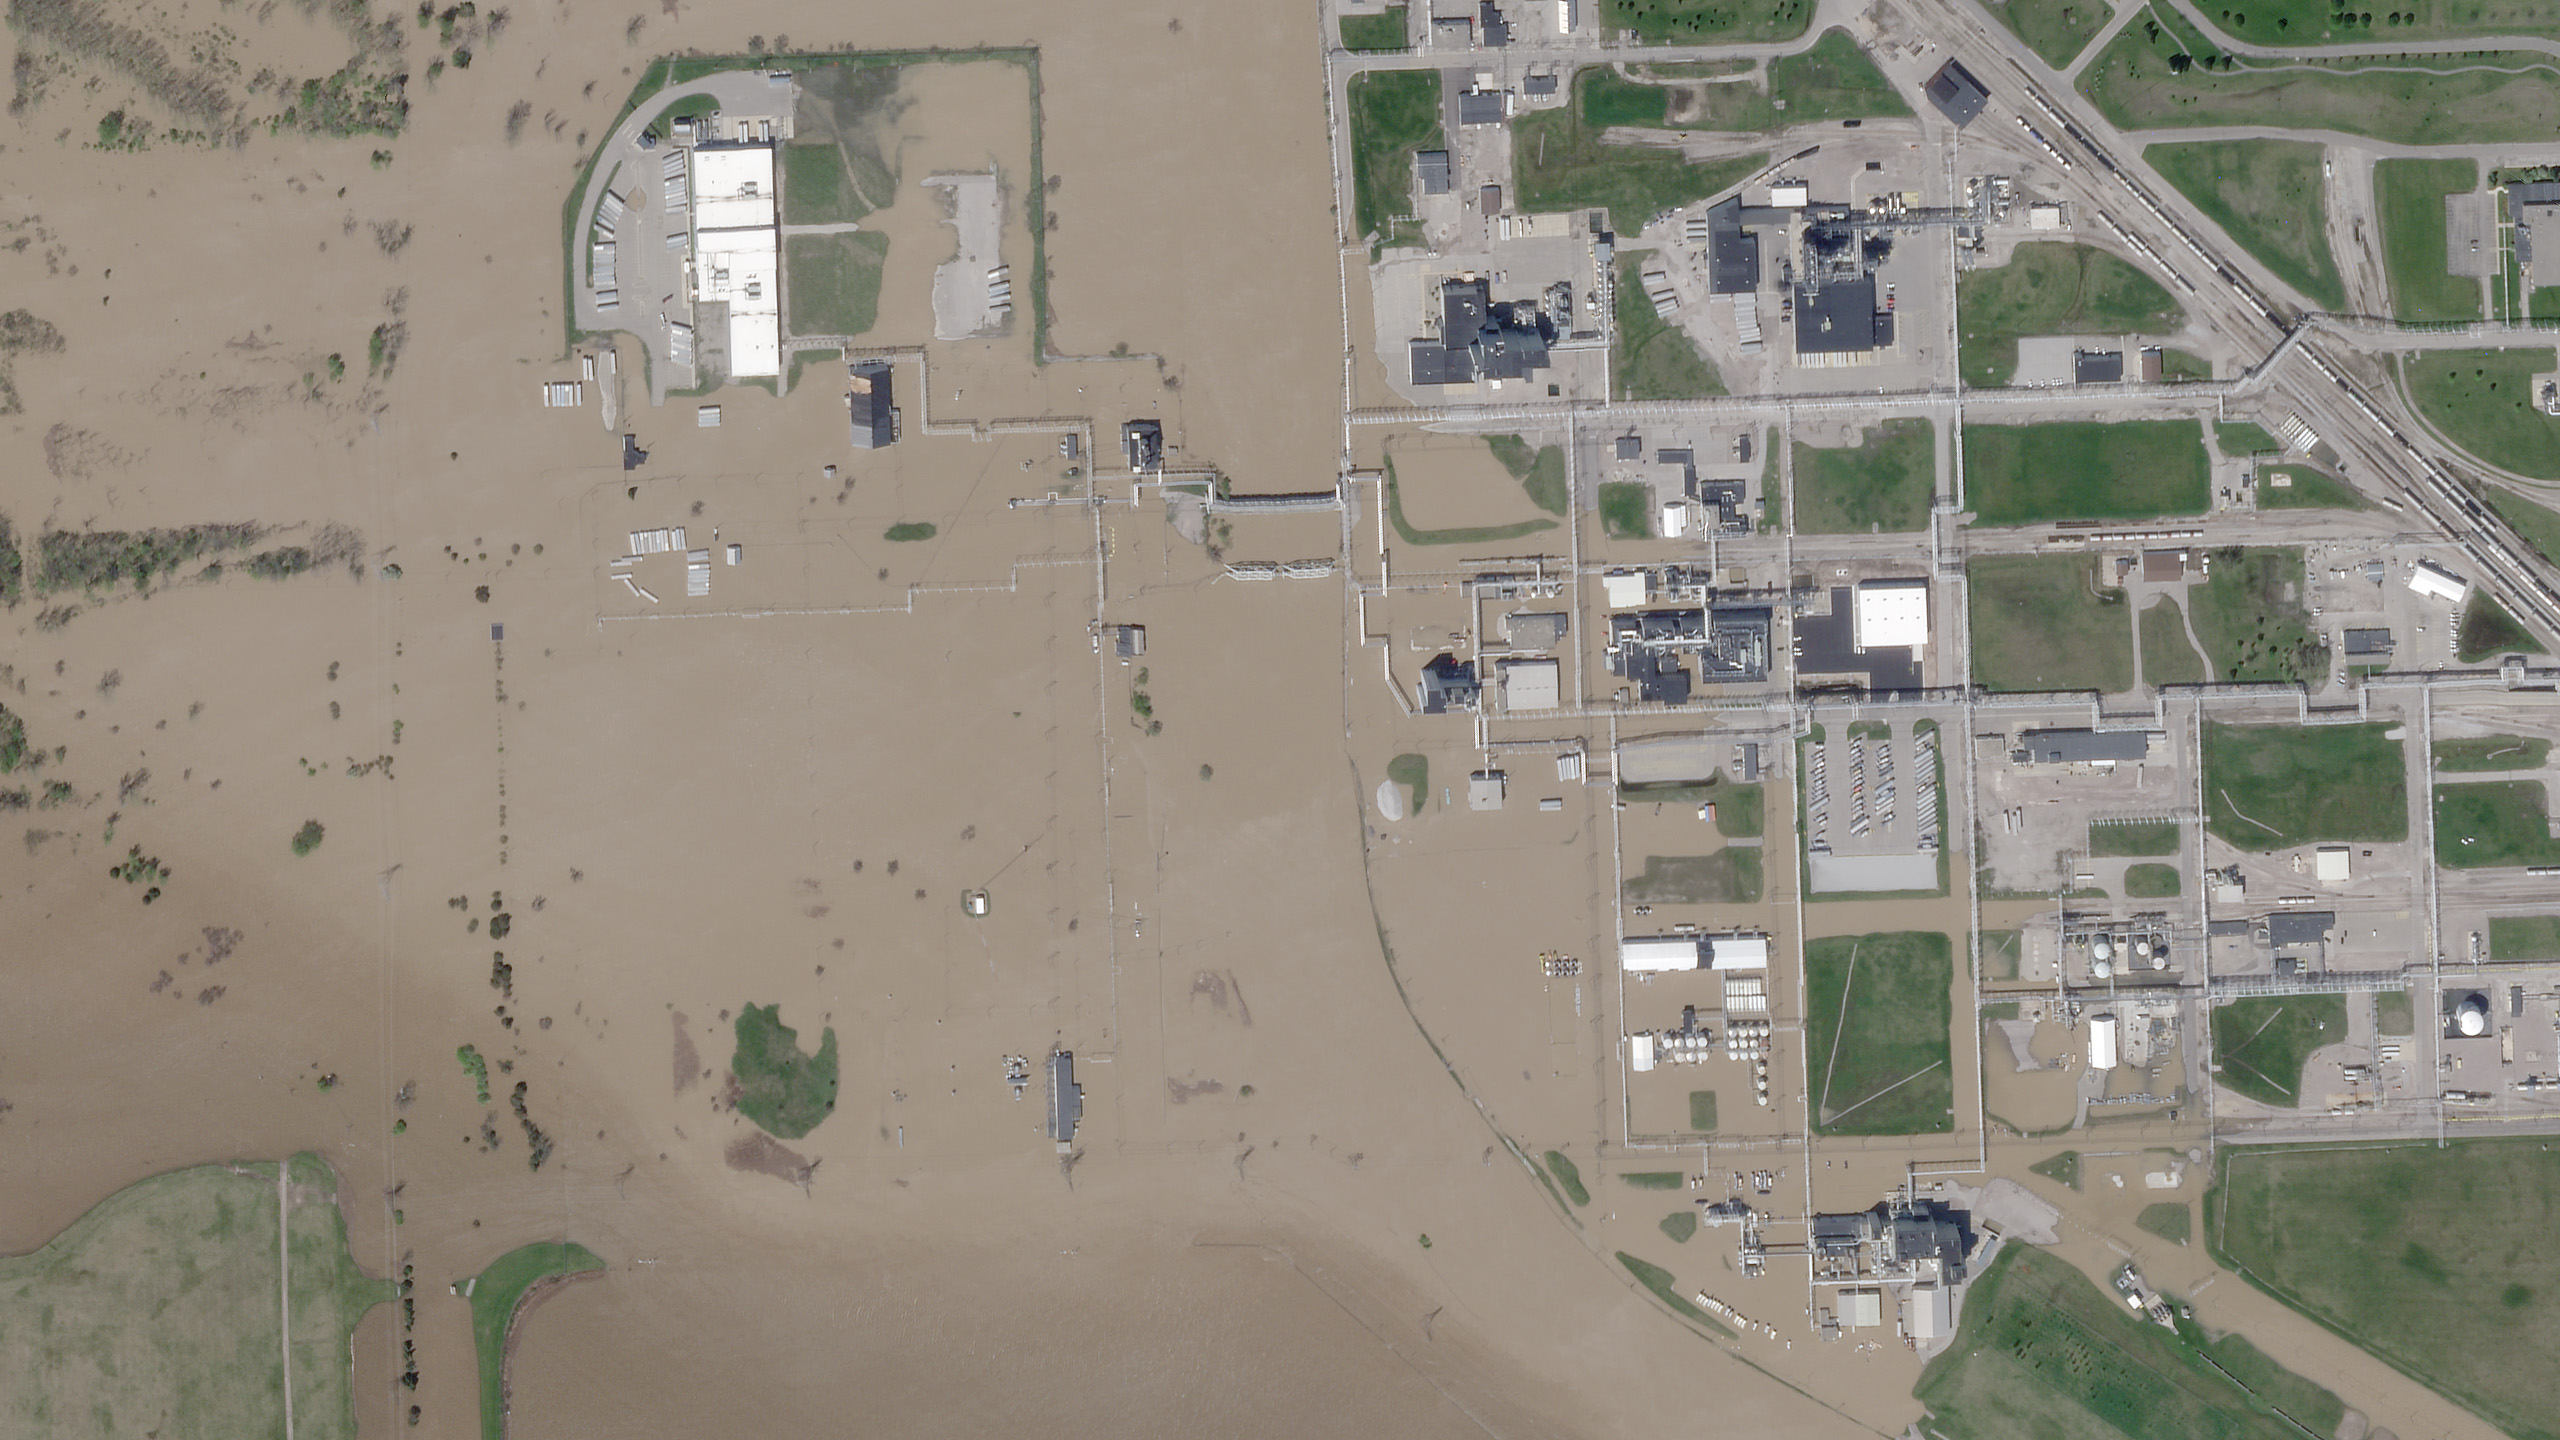 After the flooding on May 20, 2020 © 2020, Planet Labs Inc. All Rights Reserved.